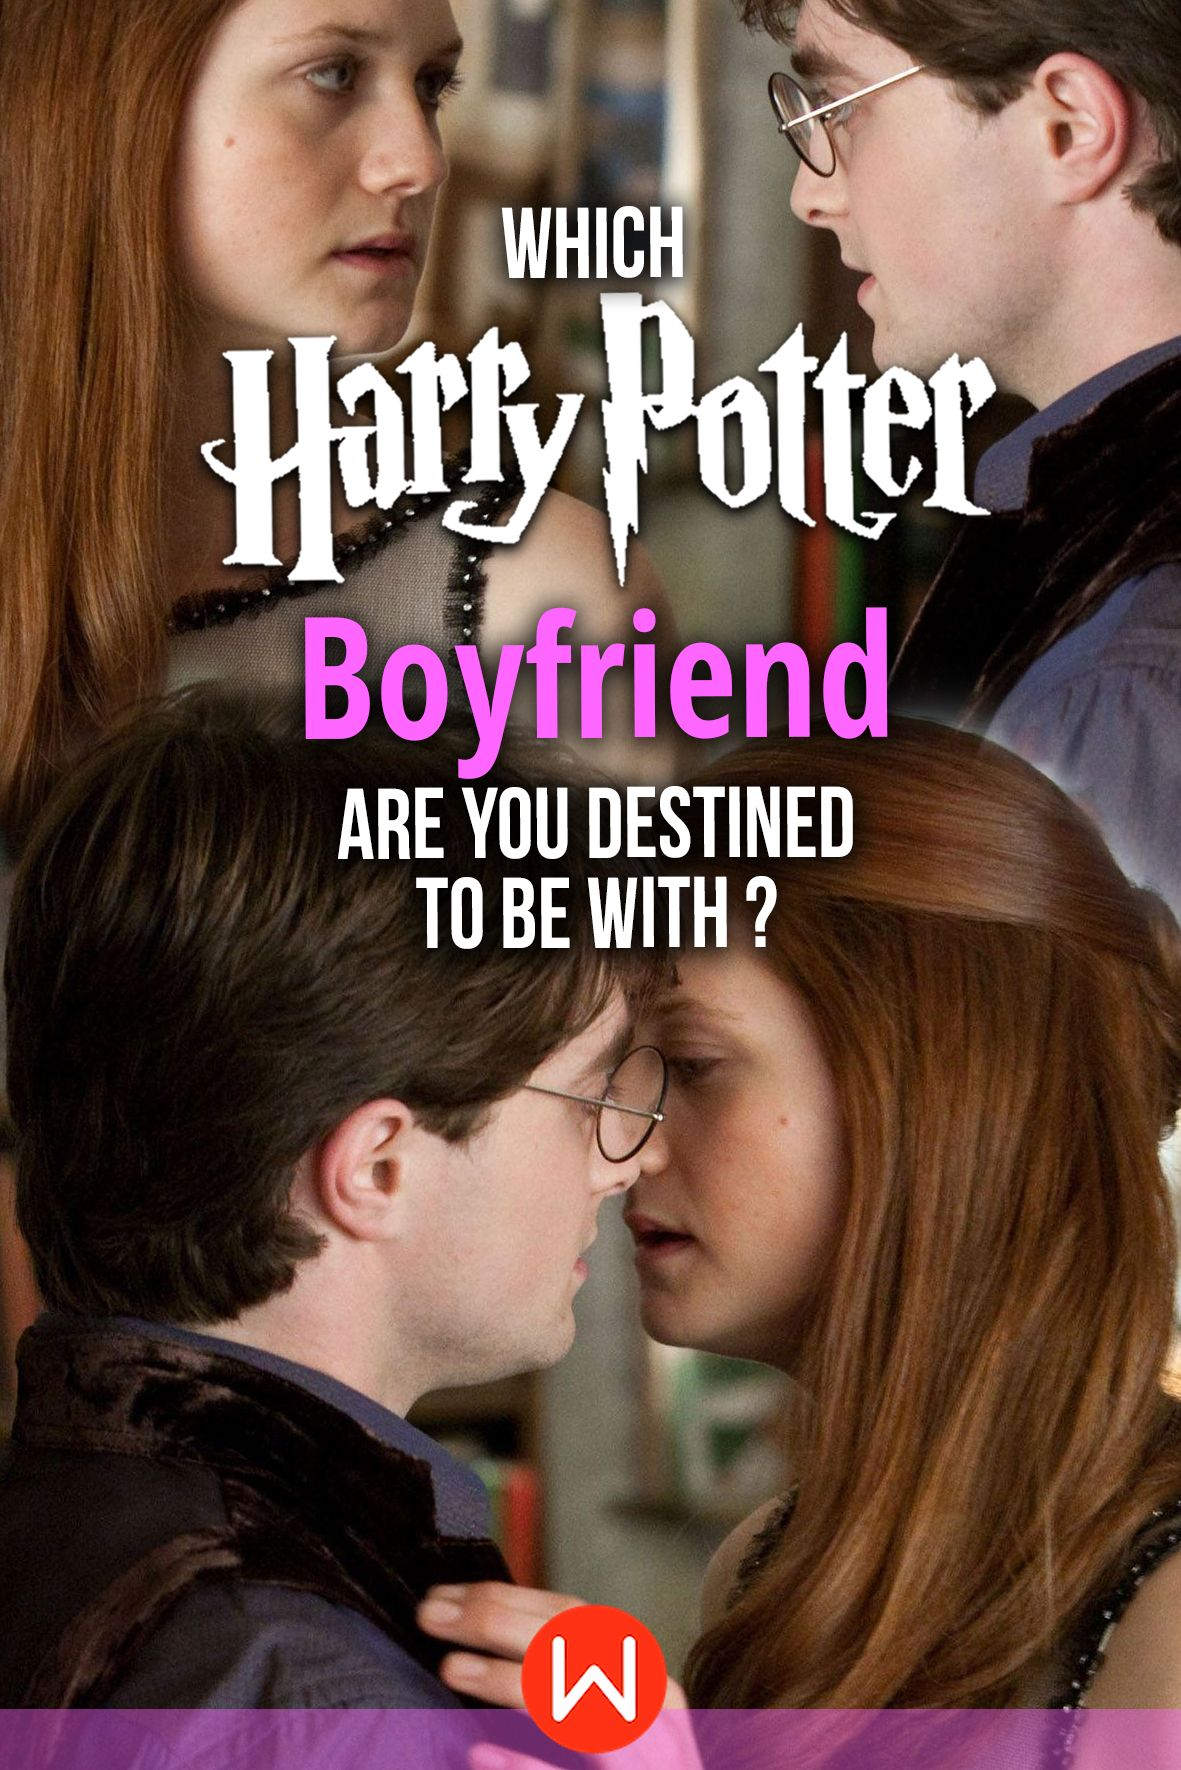 Quiz: Which Harry Potter Boyfriend Are You Destined To Be